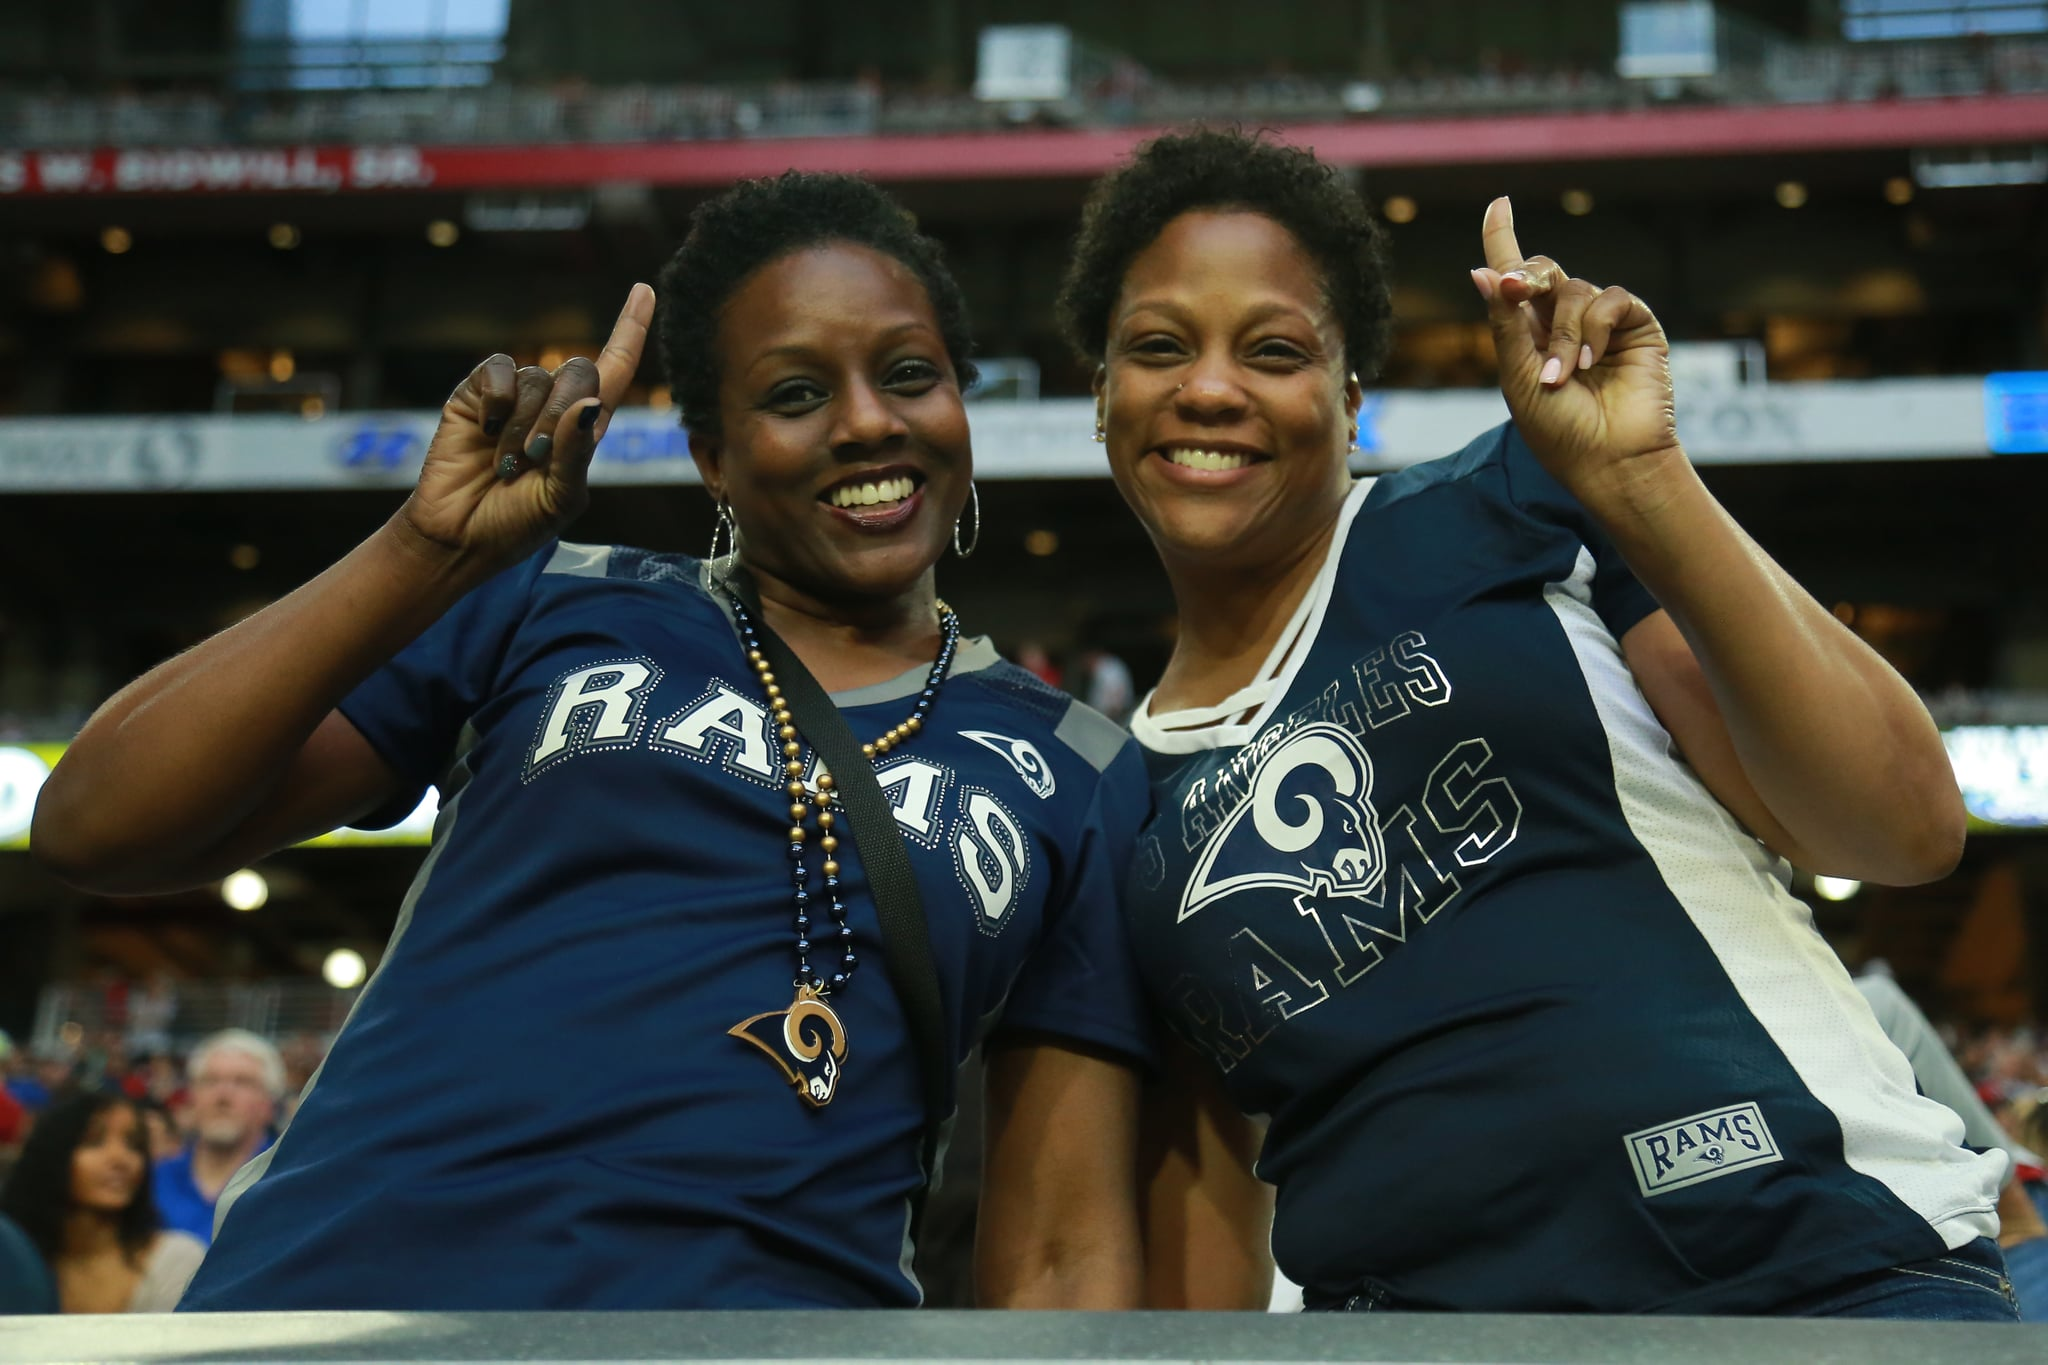 GLENDALE, ARIZONA - DECEMBER 23: Los Angeles Rams fans enjoying the 31-9 win over the Arizona Cardinals at State Farm Stadium on December 23, 2018 in Glendale, Arizona. (Photo by Leon Bennett/Getty Images)